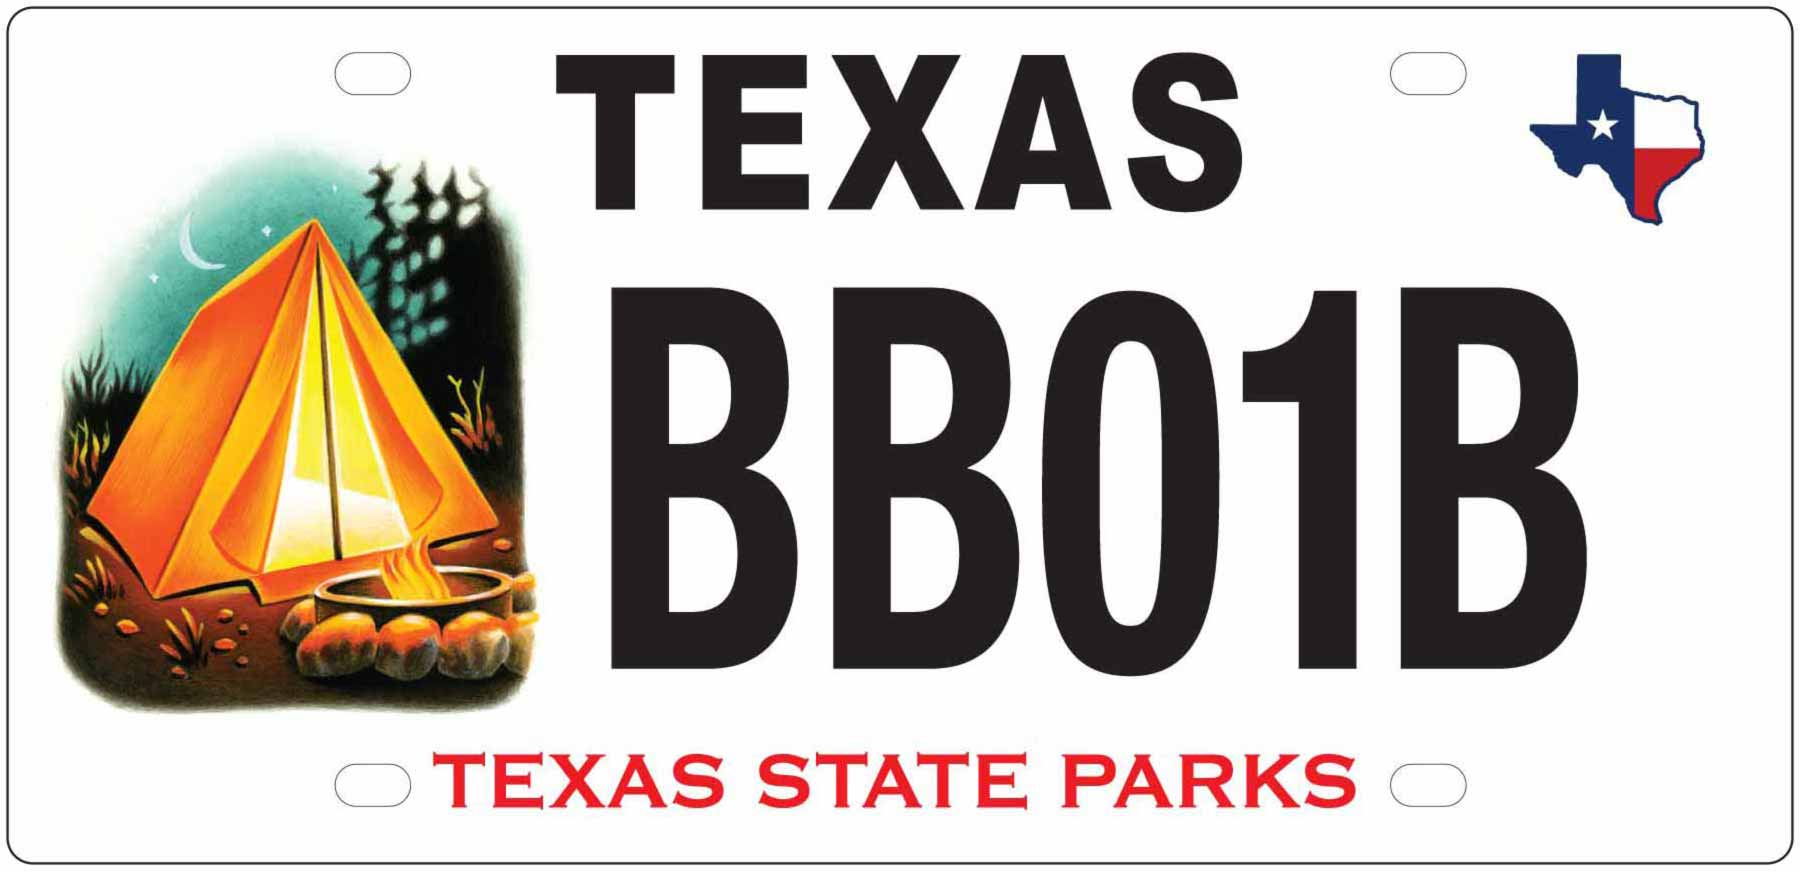 Texas State Park Camping License Plate